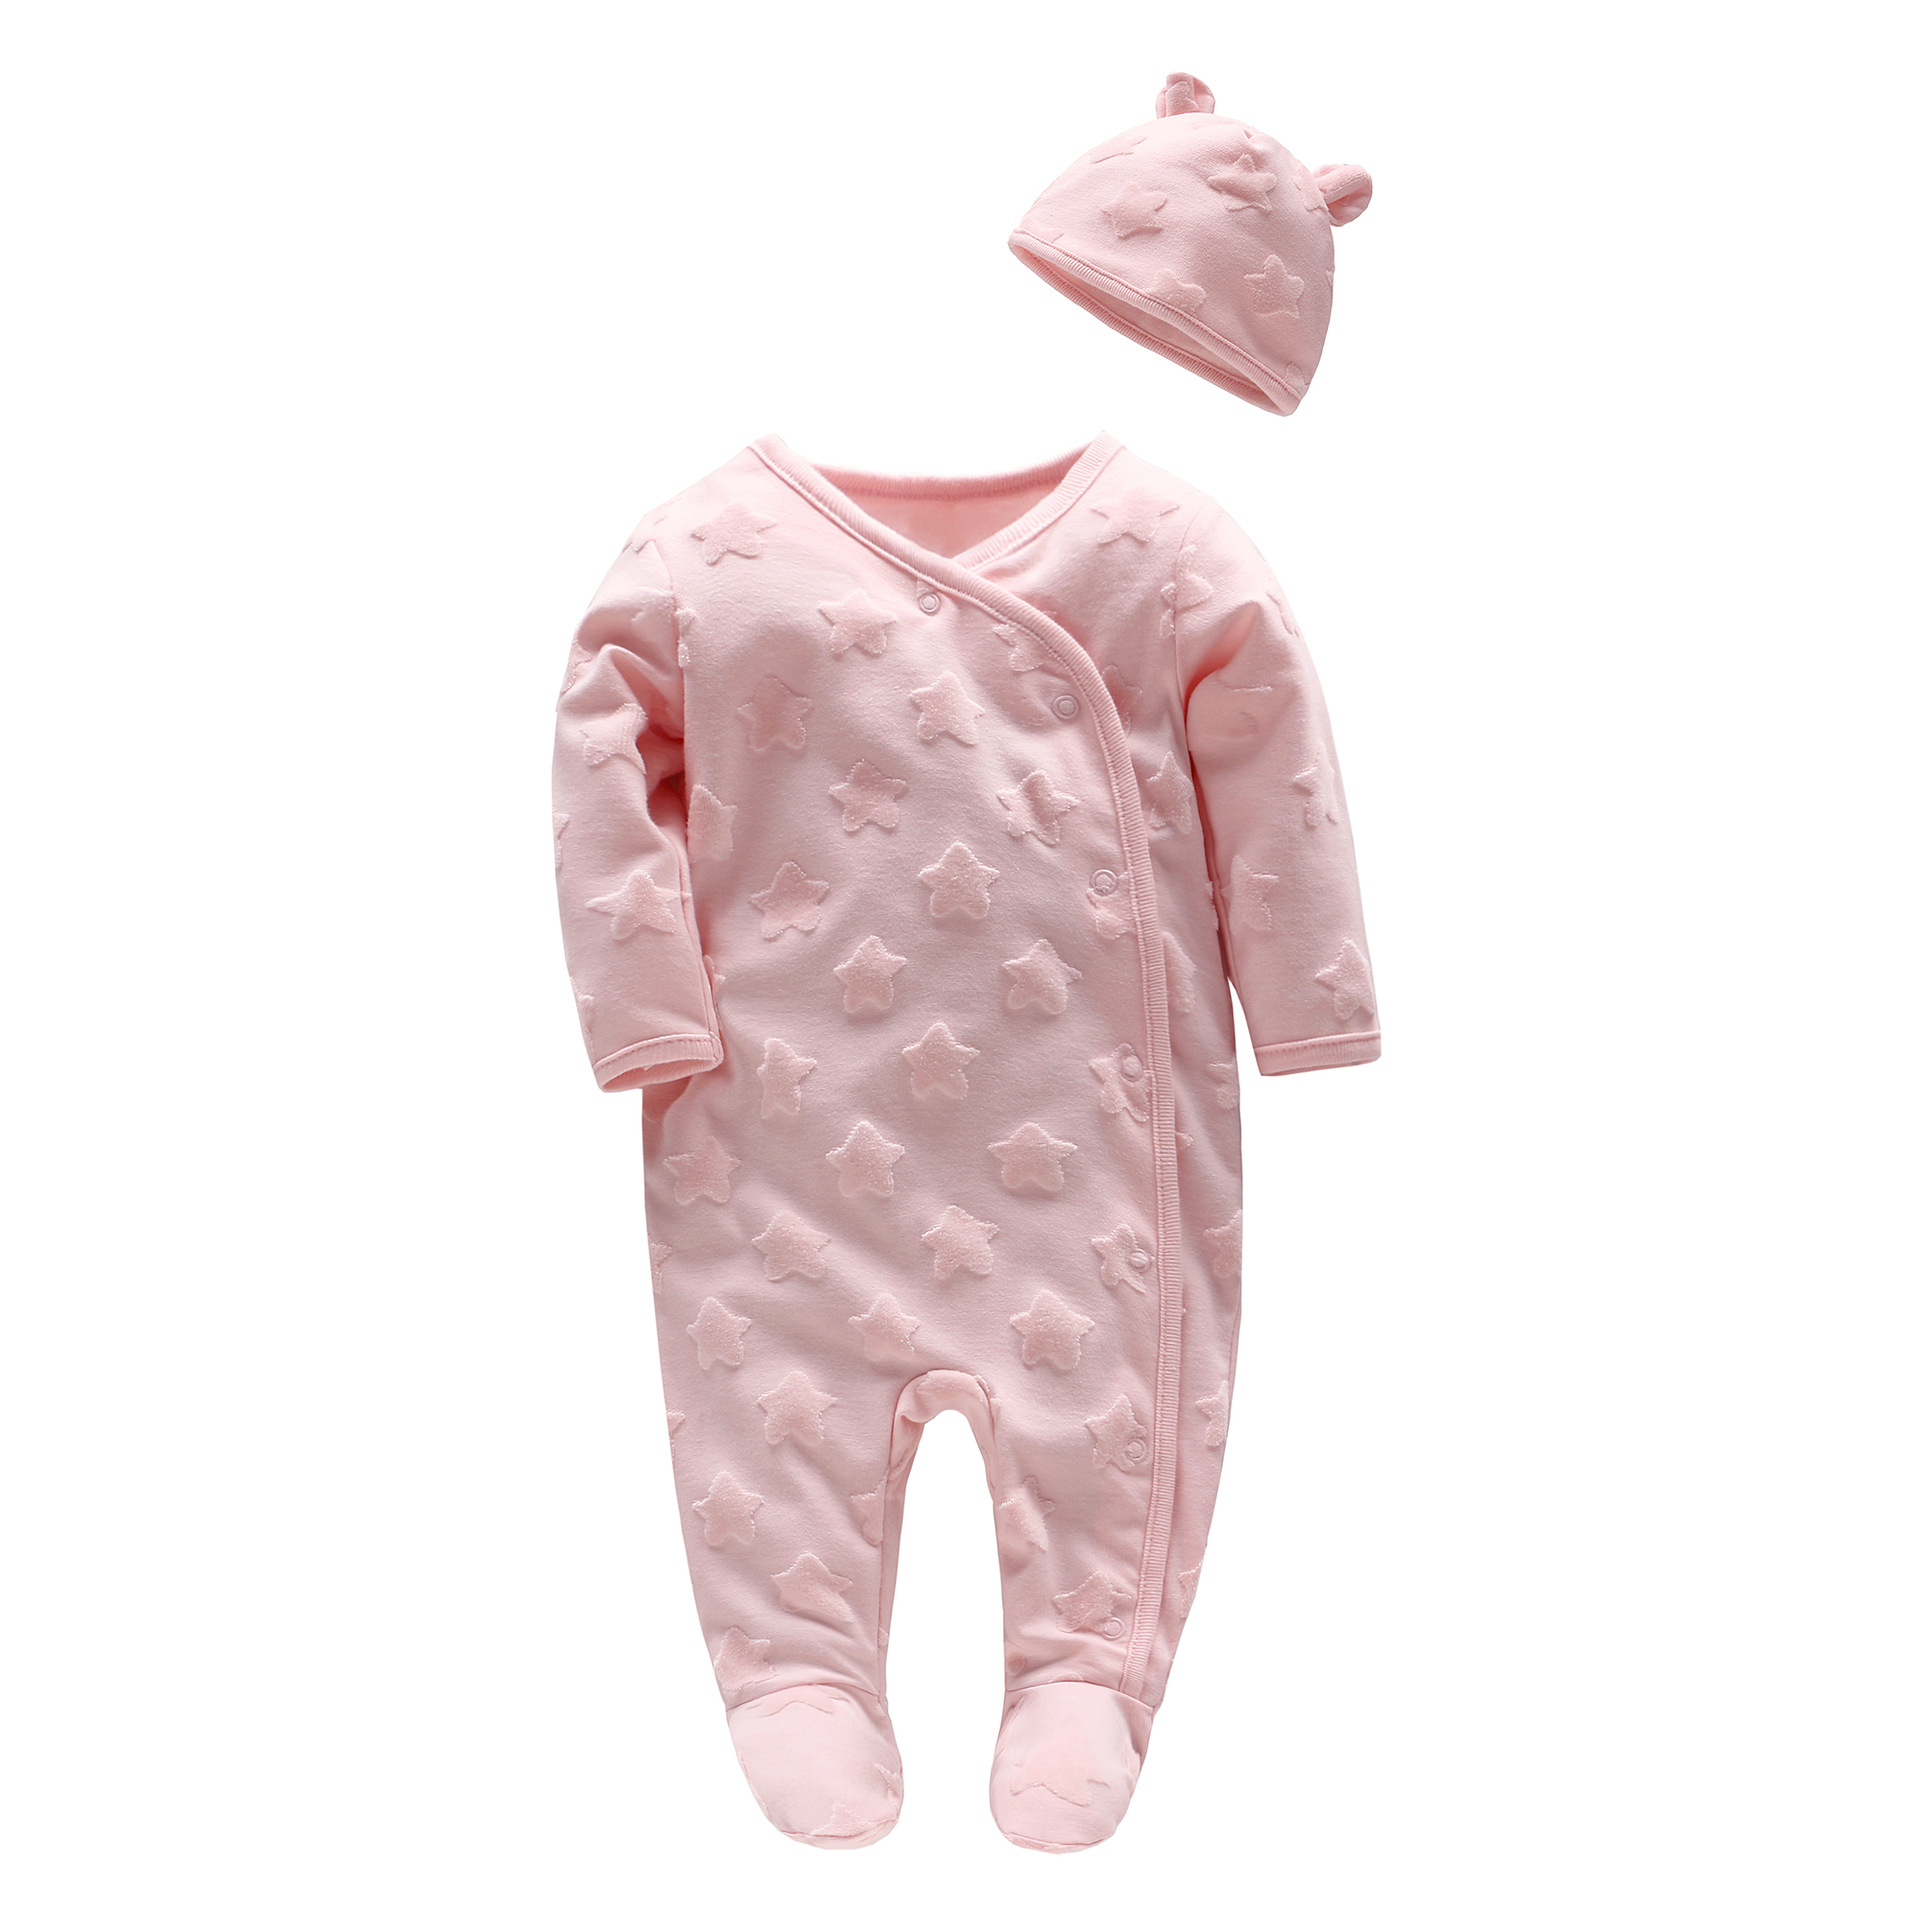 2017 Baby Girl Clothes Set Newborn Baby 2pcs Sets Star Soft Velvet Romper With Hat Babies